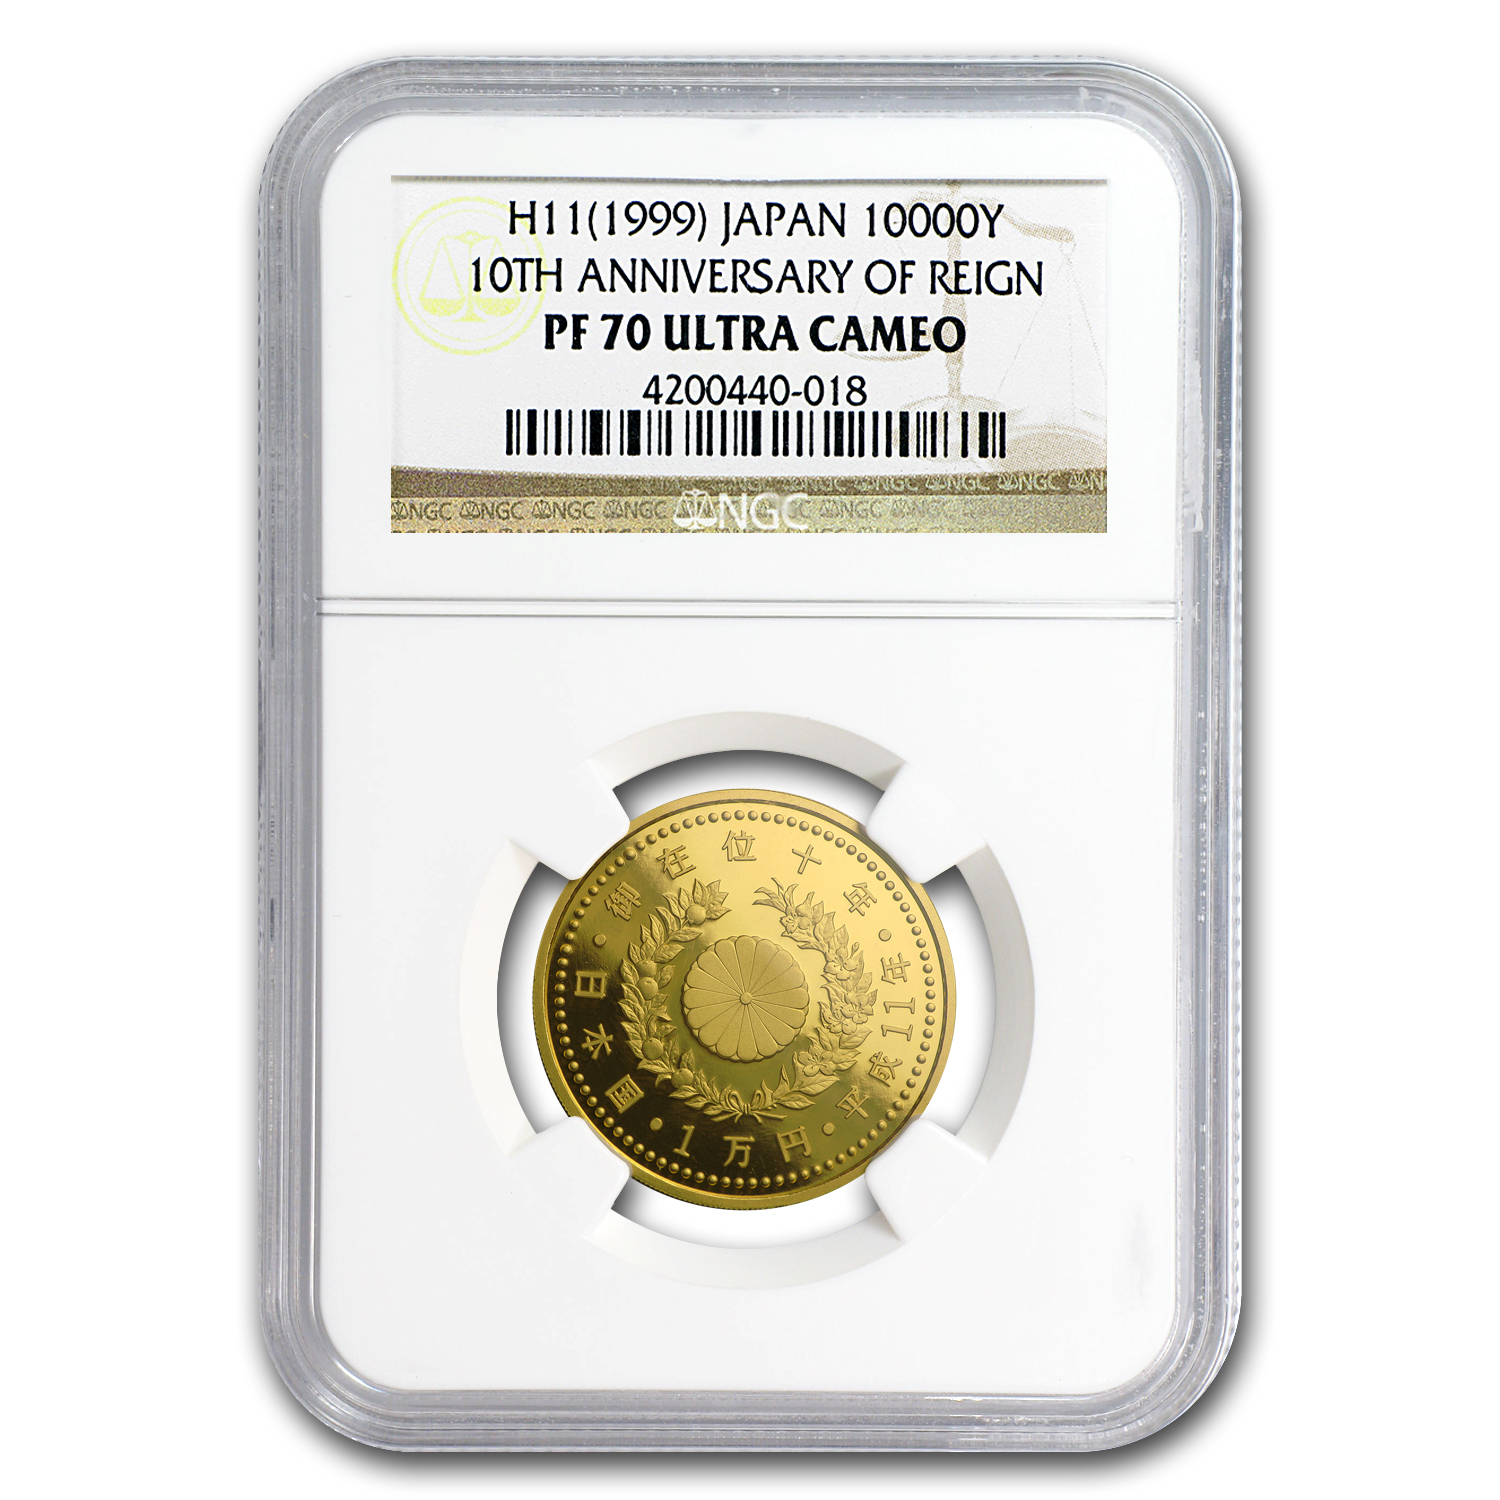 1999 Japan Gold 10K 10th Anniv of Emperor's Enthronement PF-70